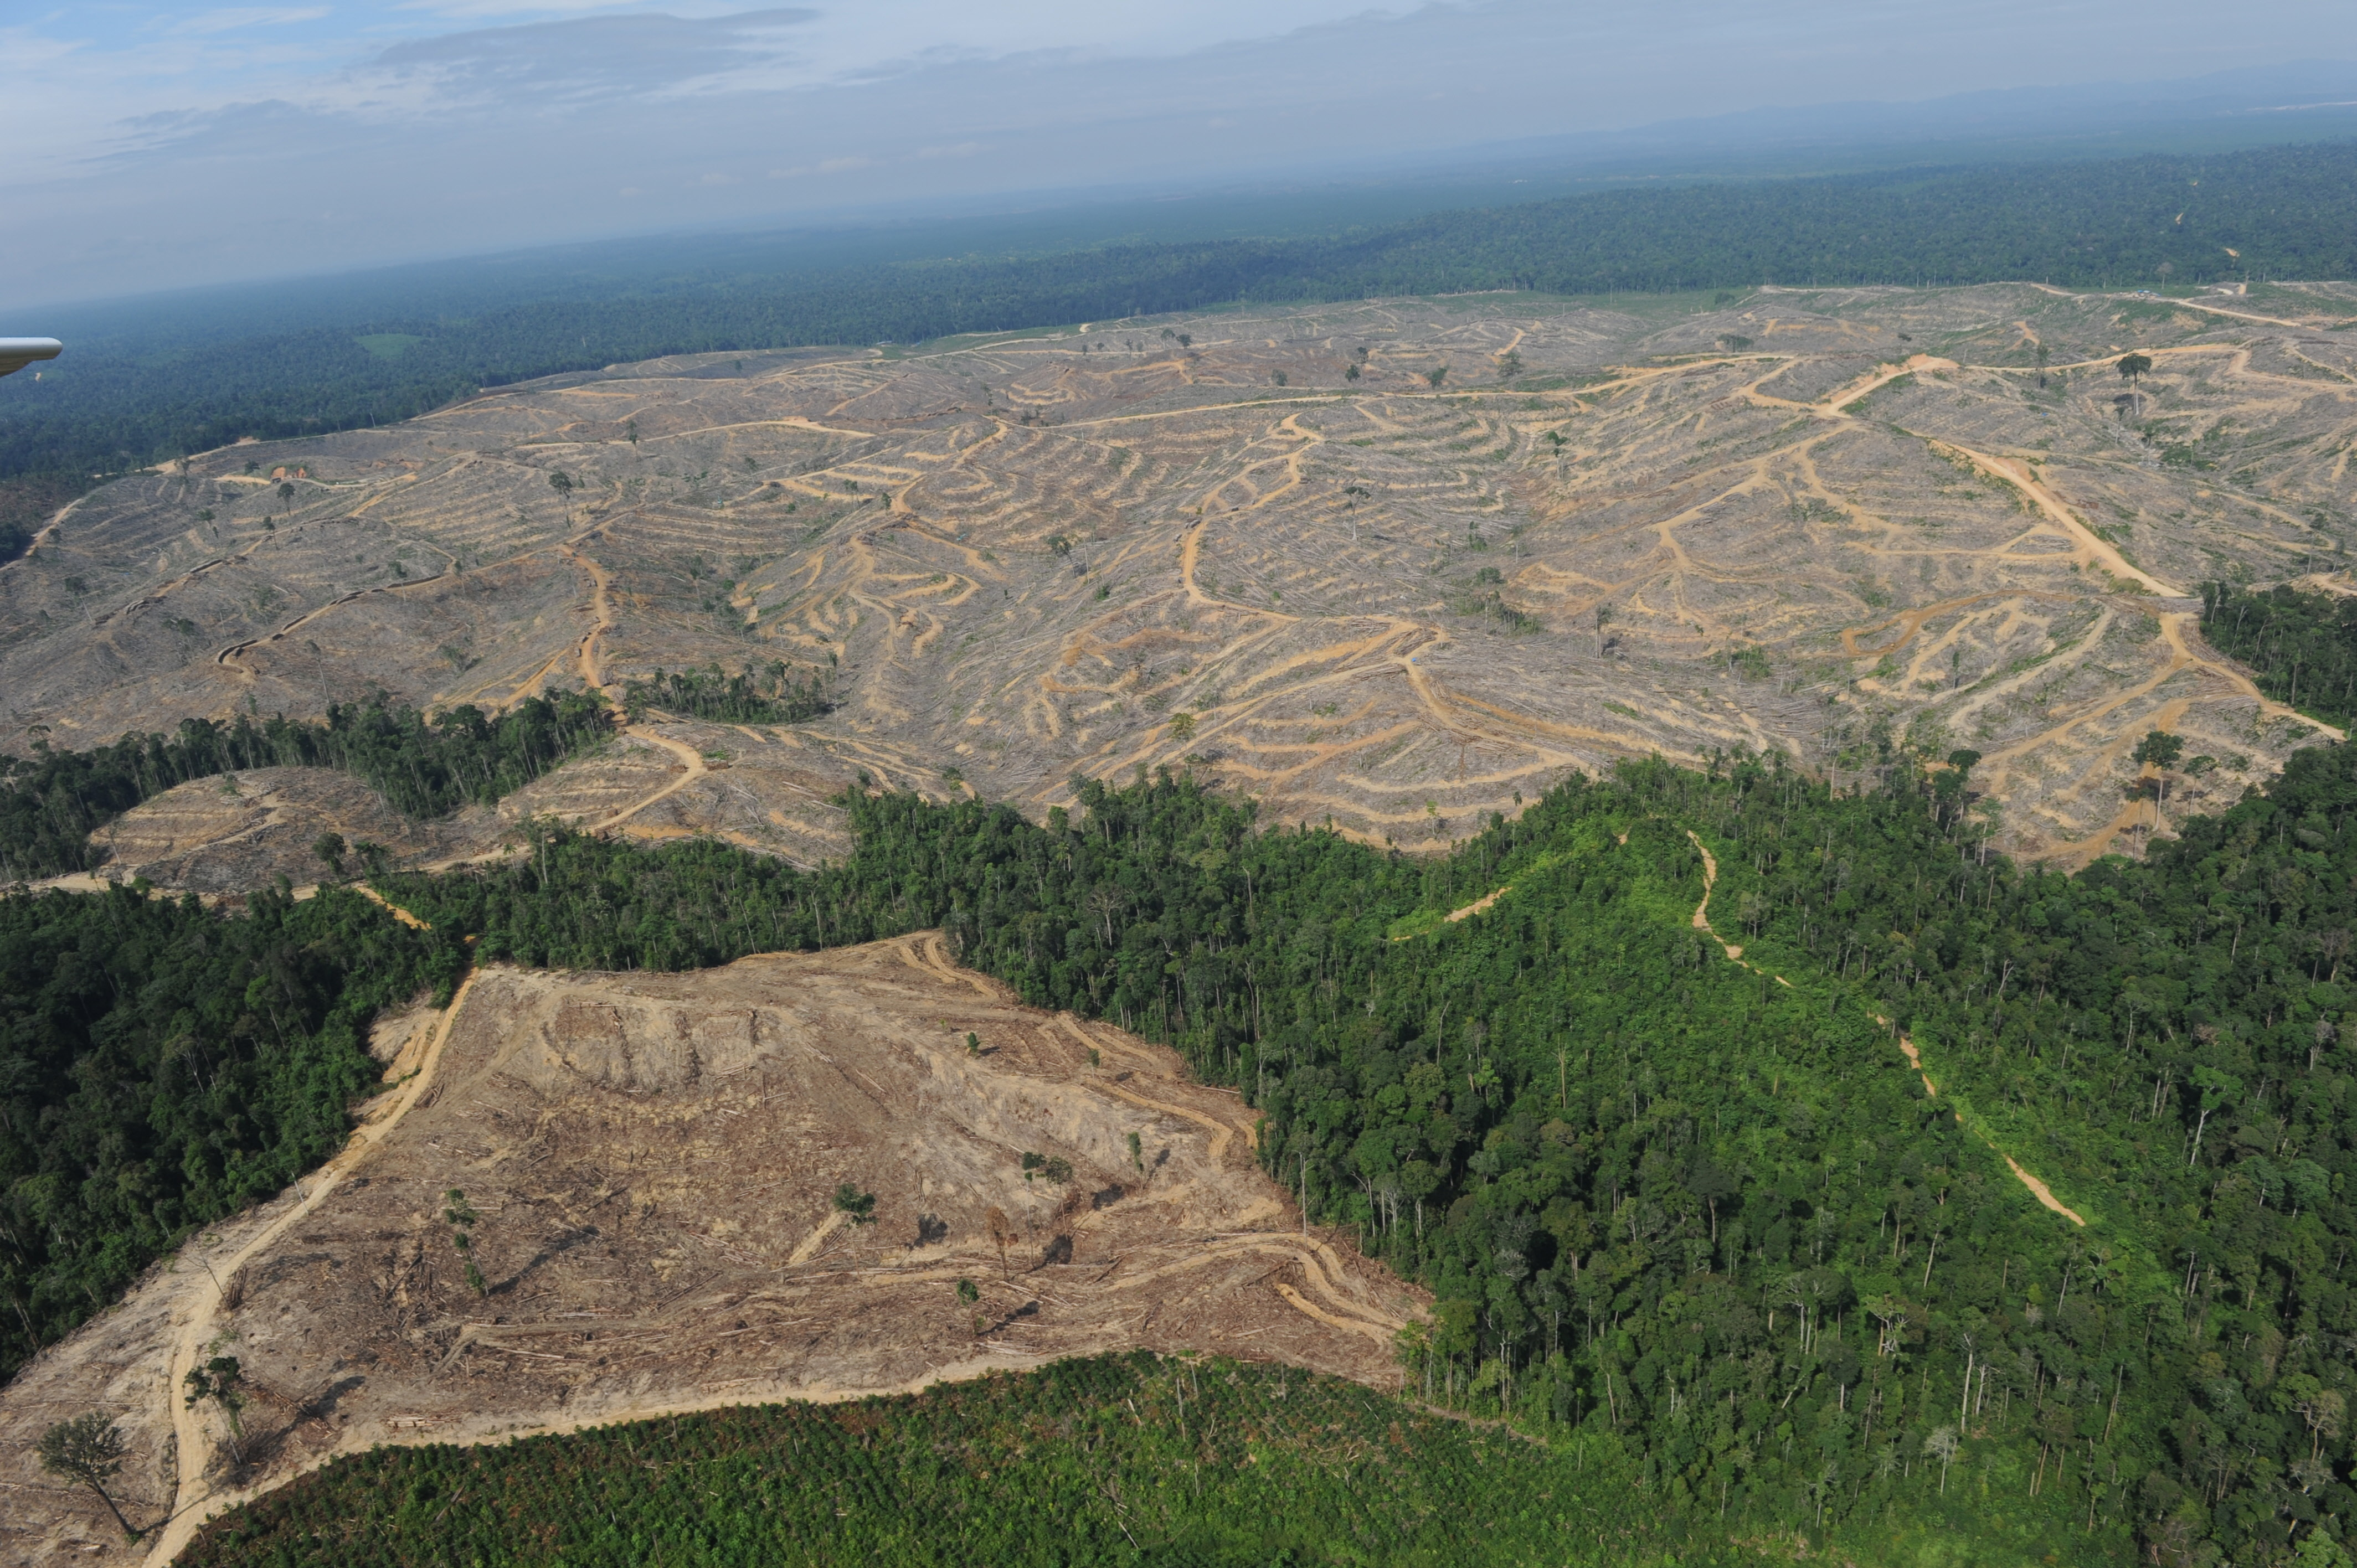 Battling Deforestation In Indonesia, One Firm At A Time